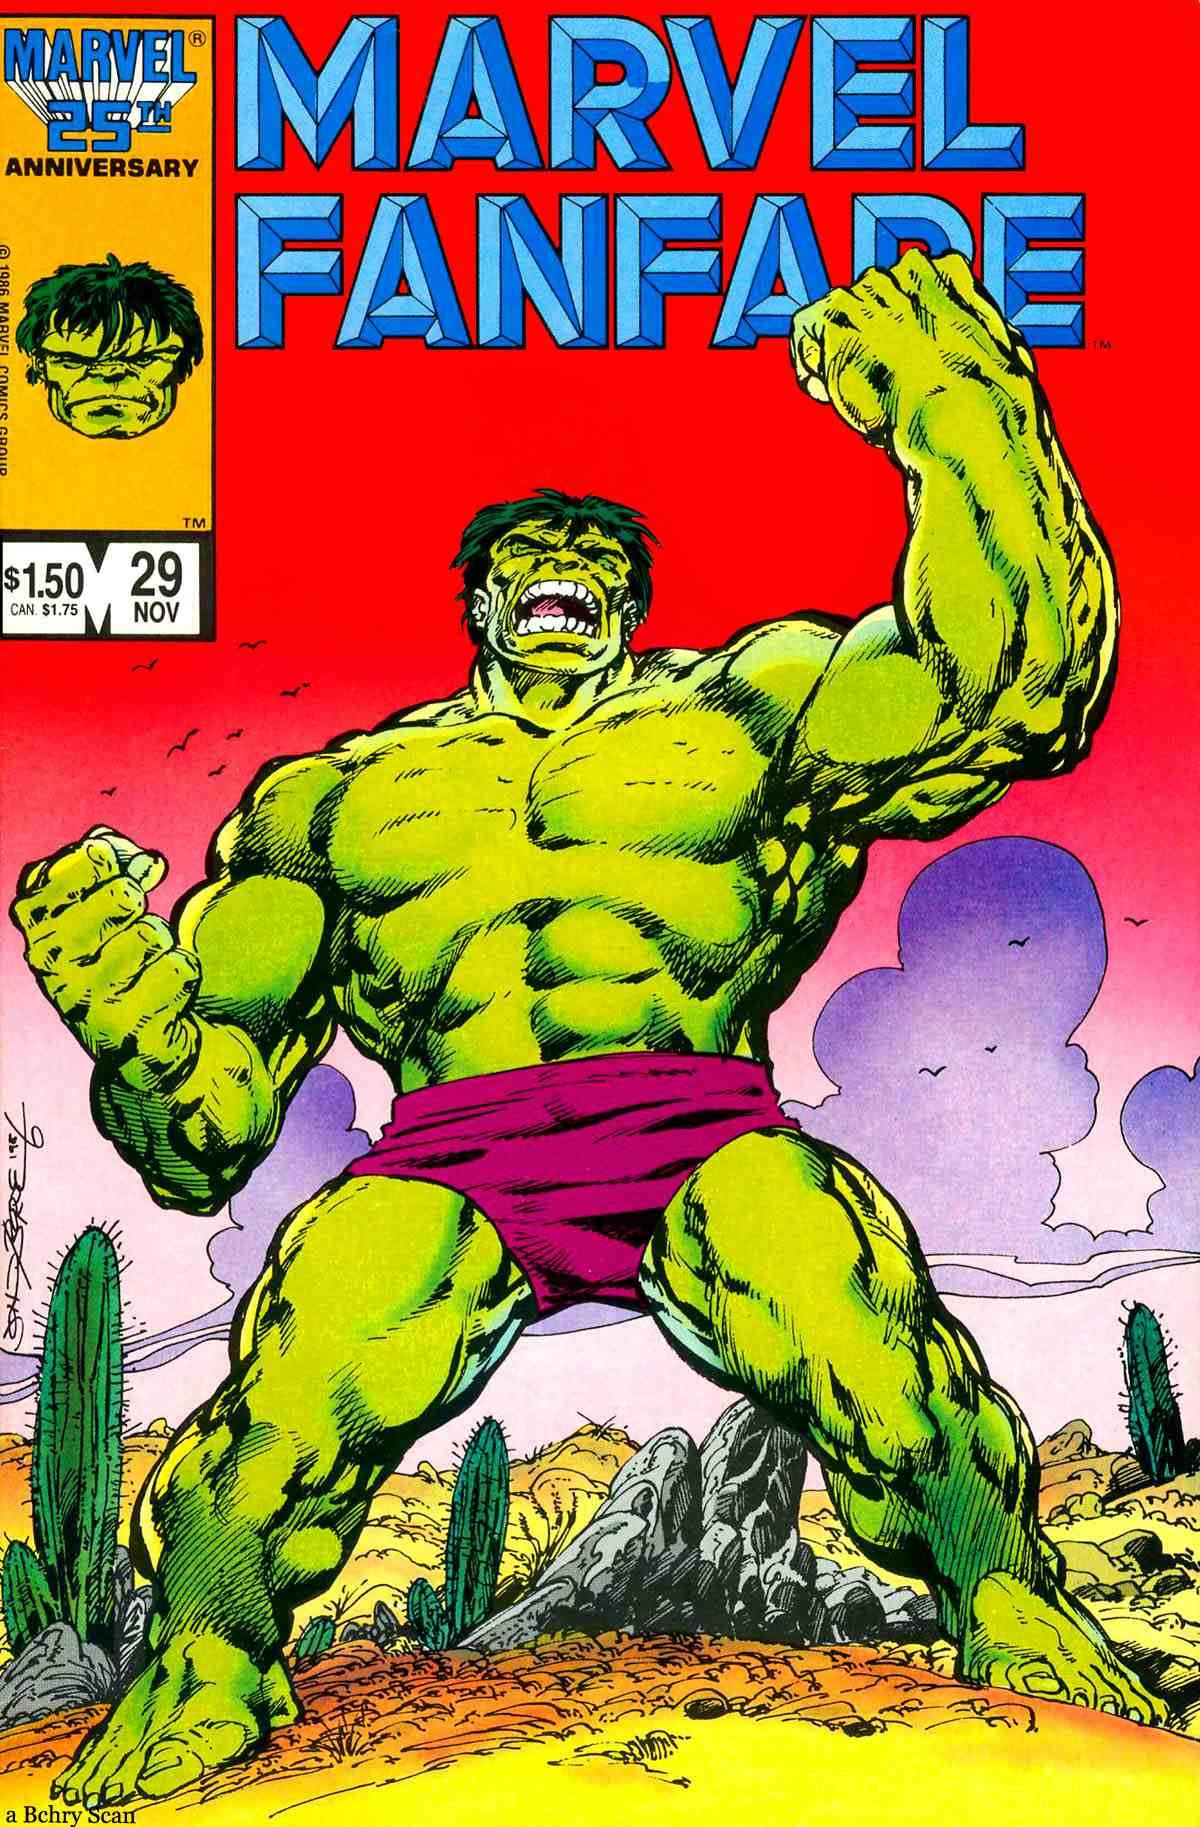 Classic cover by John Byrne to Marvel Fanfare #29, published by Marvel Comics, November 1986.